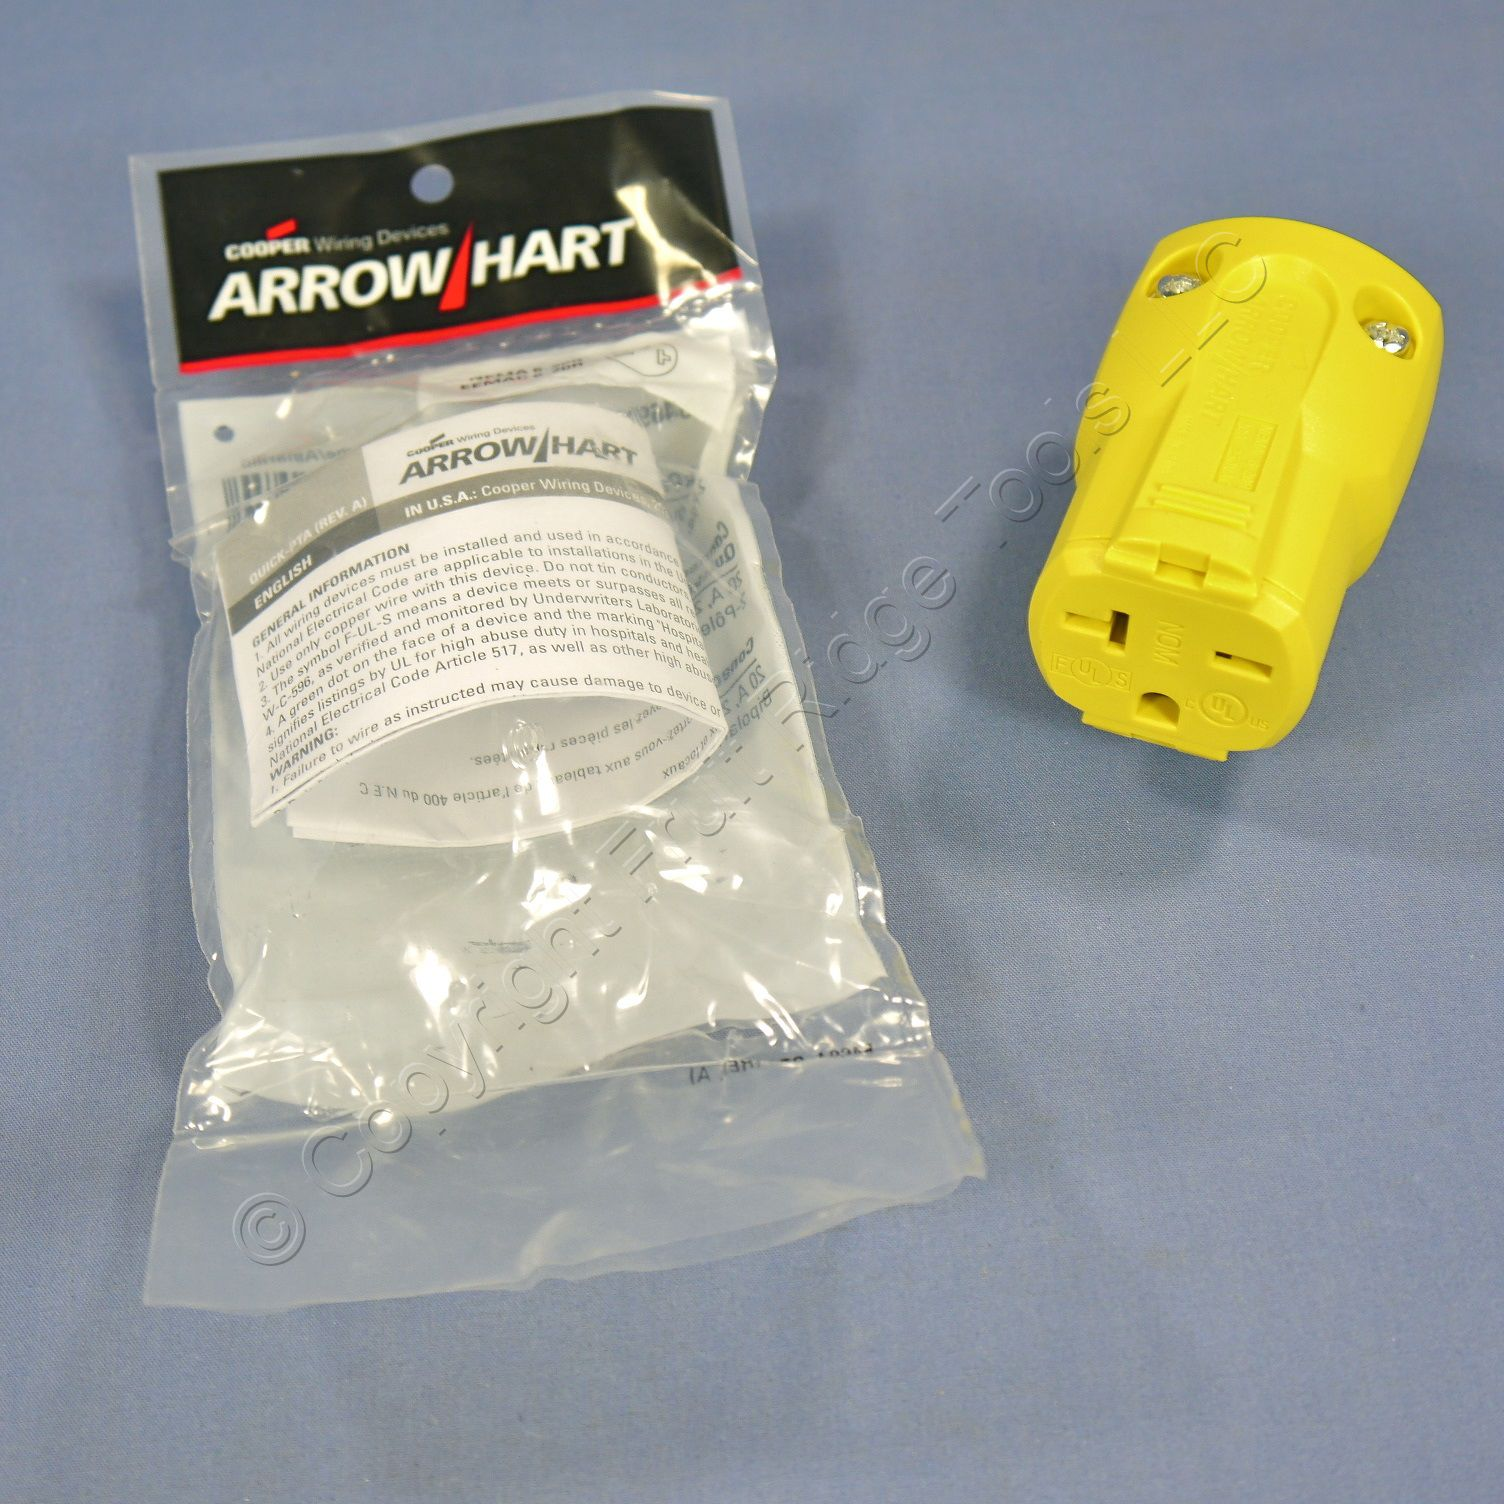 Cooper Arrow Hart Yellow QuickGrip Straight Blade Connector 2P3W NEMA 6-20 20A 250V AH5469Y